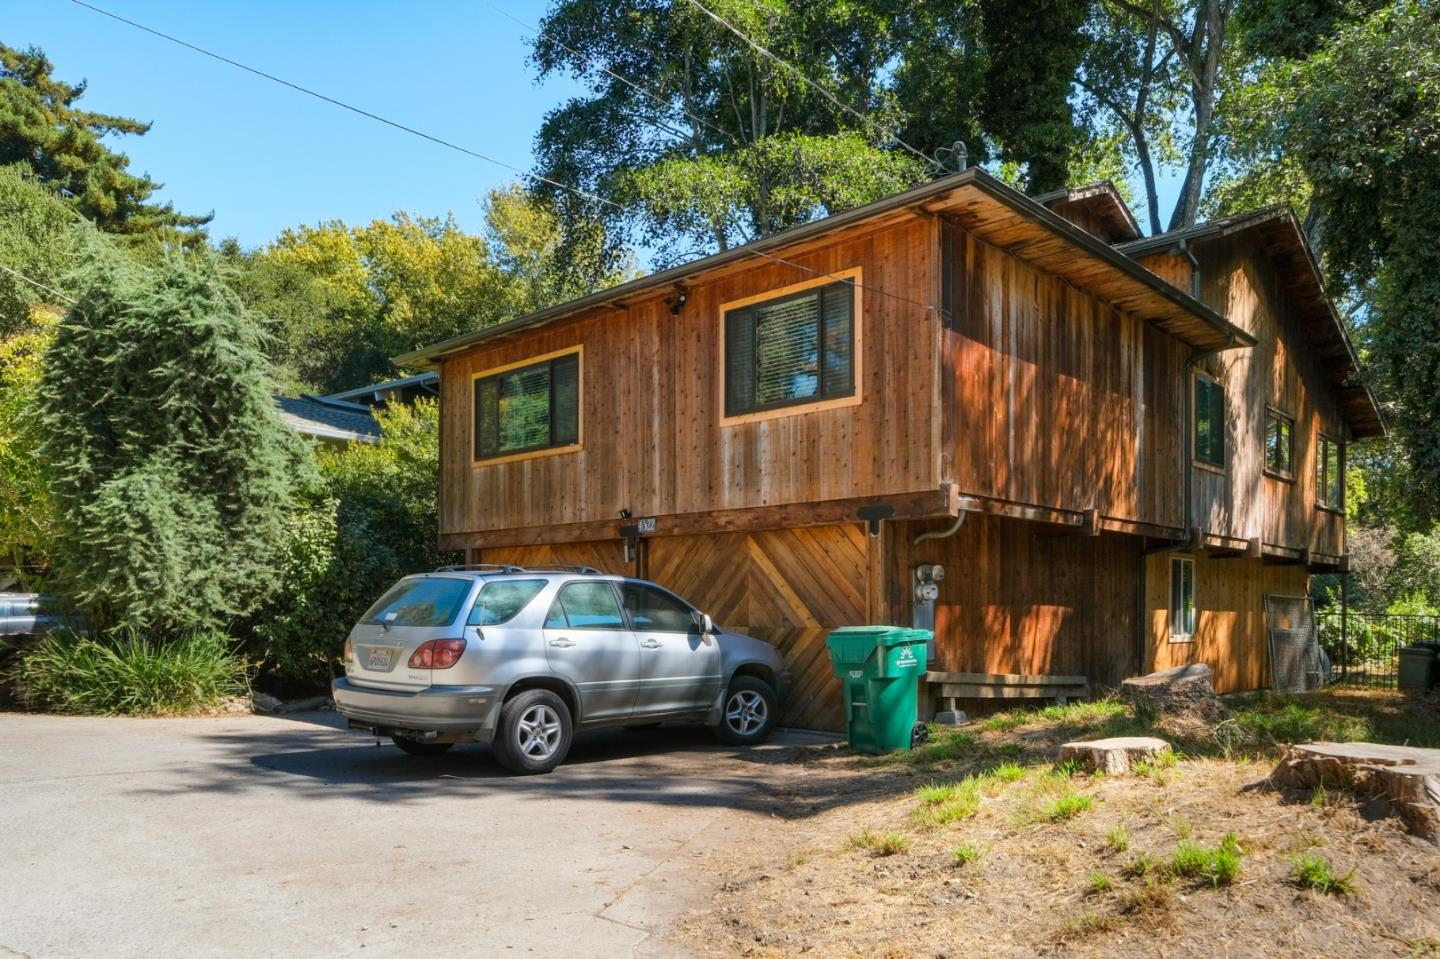 """Imagine looking out windows and seeing nature instead of neighbors in this """"Tahoe-style"""" home perched in a magical creek side setting with a unique in-town location. It's an easy walk to Soquel. Explore nature in your own backyard. The main living is all on one level with an upstairs loft for the artist or entrepreneur. An open and inviting great room design with open beam ceilings, solid wood beam construction and finishes in cedar, fir, redwood, and oak. Hardwood floors throughout, Updated Mather bath with walk-in shower, updated hall bath with walk-in rain shower, well placed windows for catching the views, a nice deck overlooking the yard, and 2 car garage. Capitola Beach sits a mile away and Old San Jose Rd makes it convenient for commuters."""